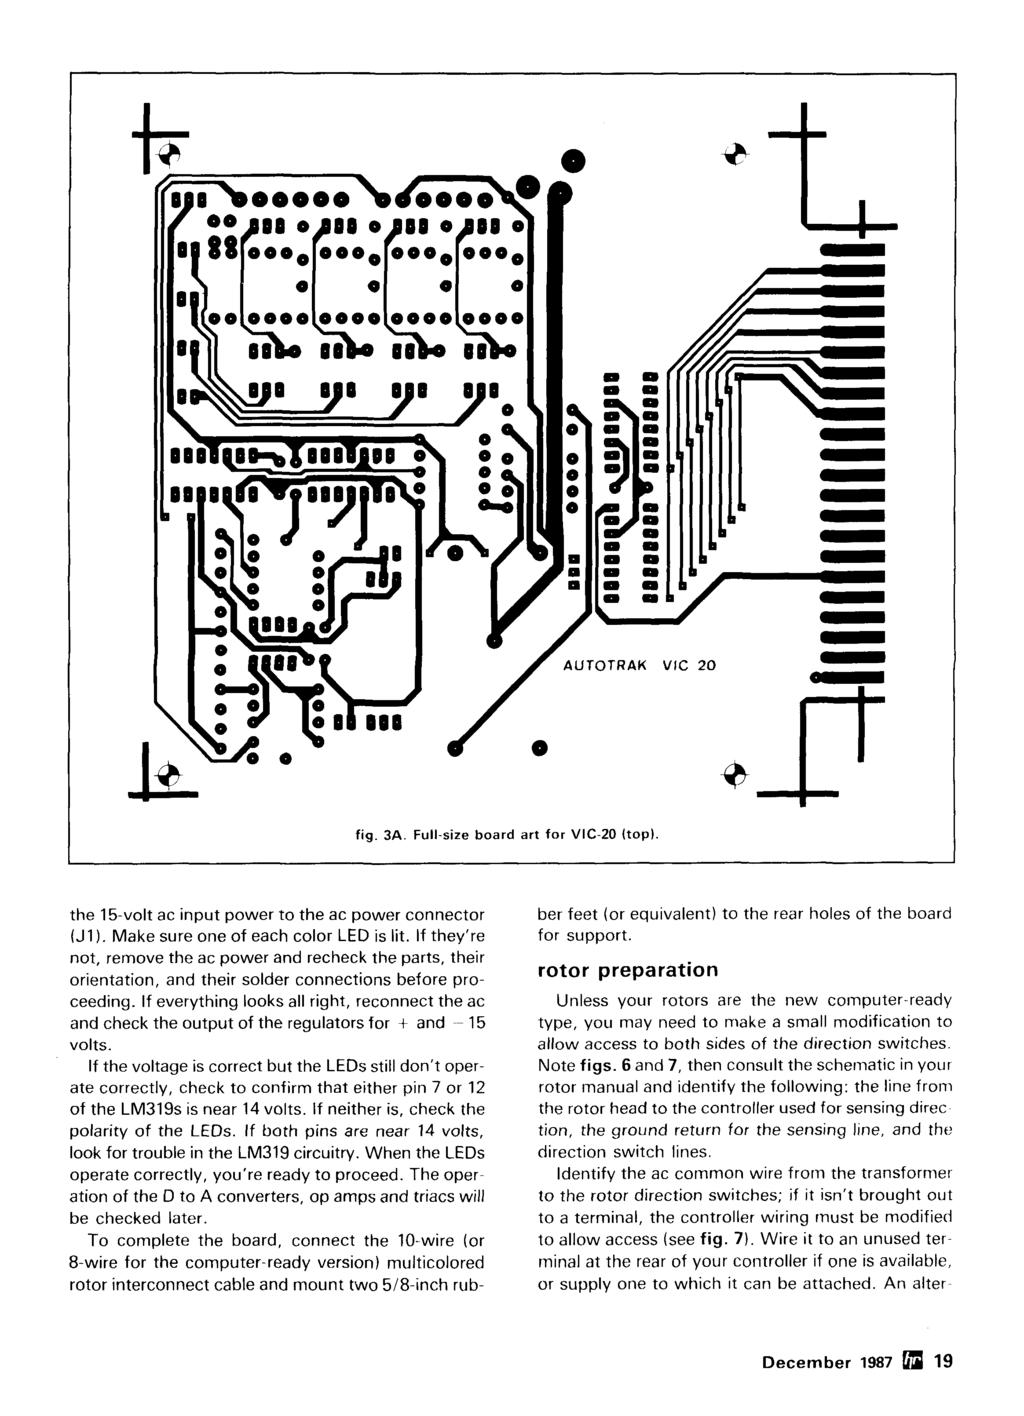 Rlrla Focus On Communications Pdf Norm Plot Of Our Uhf Rfid Model For The Fullsized Circuit Board 3a Full Size Art Vc